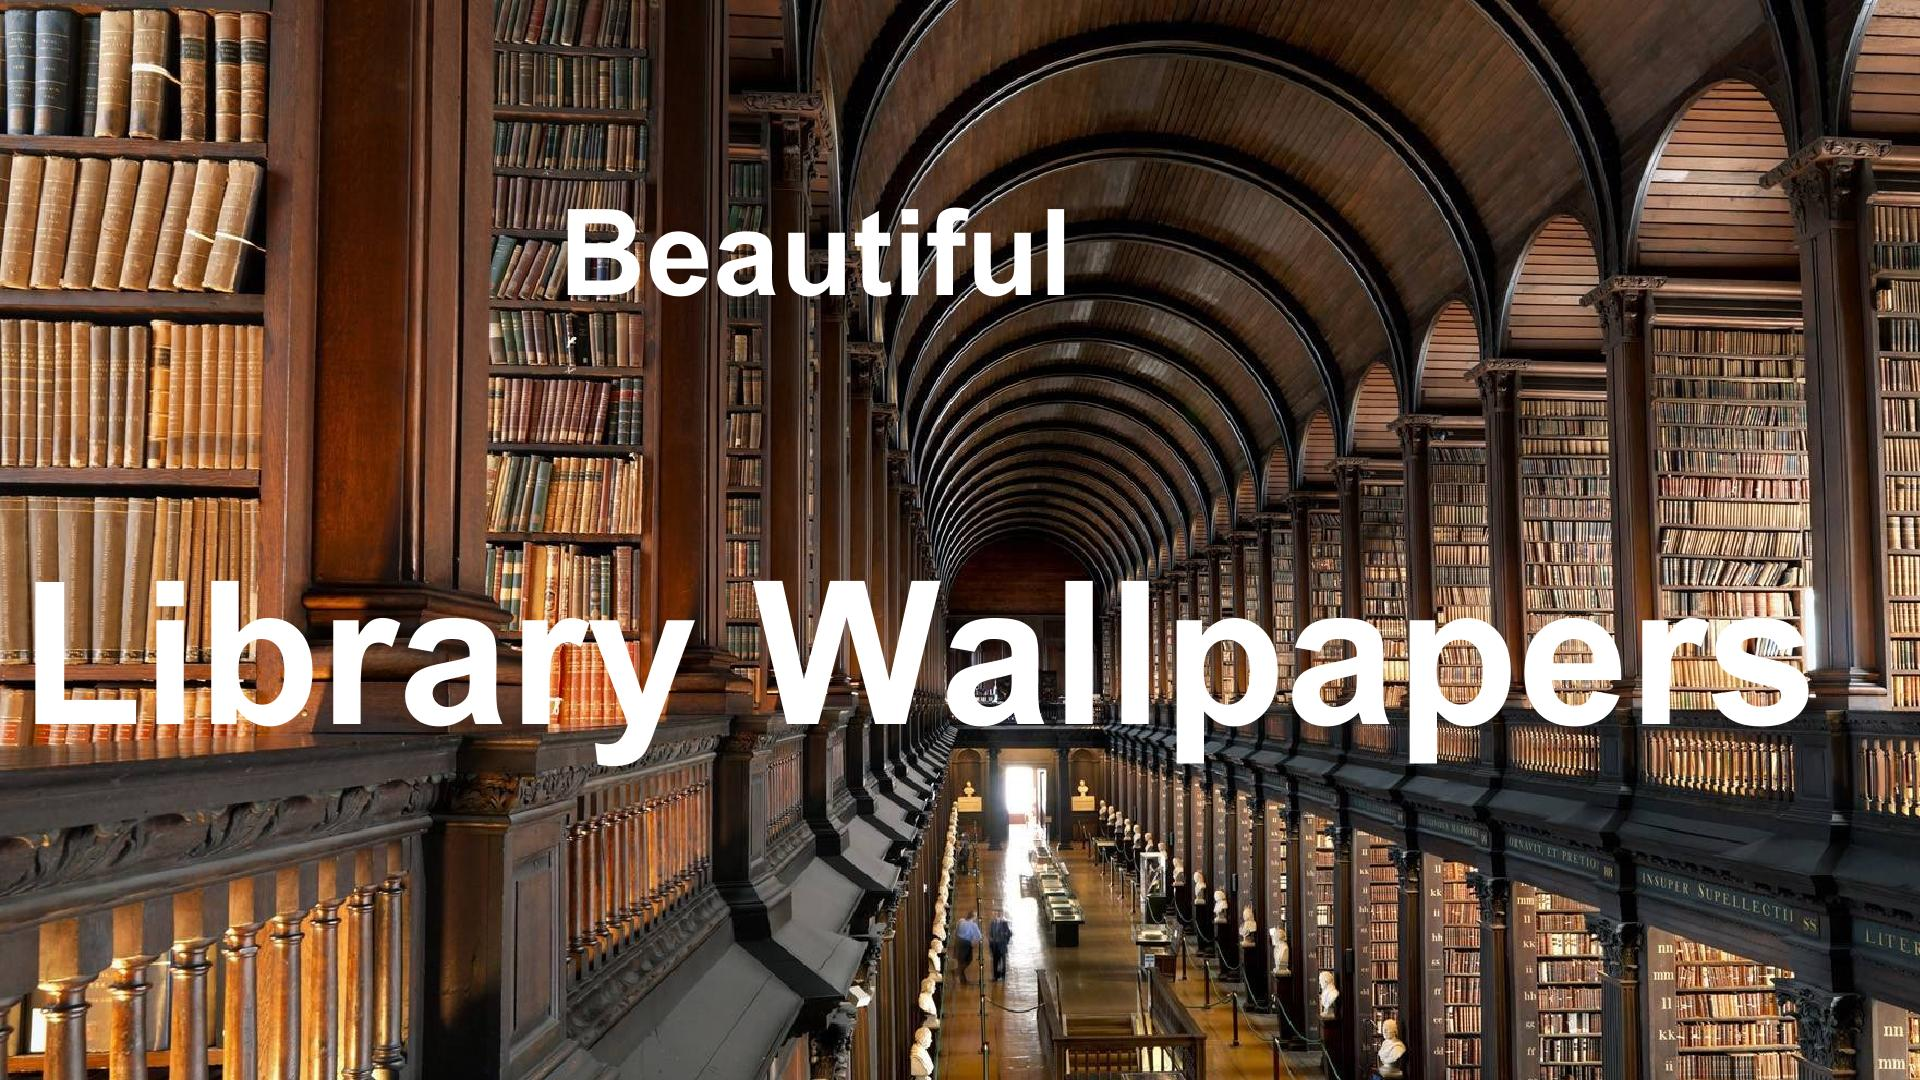 Fancy Library Wallpapers incl  free editor for Android - APK Download